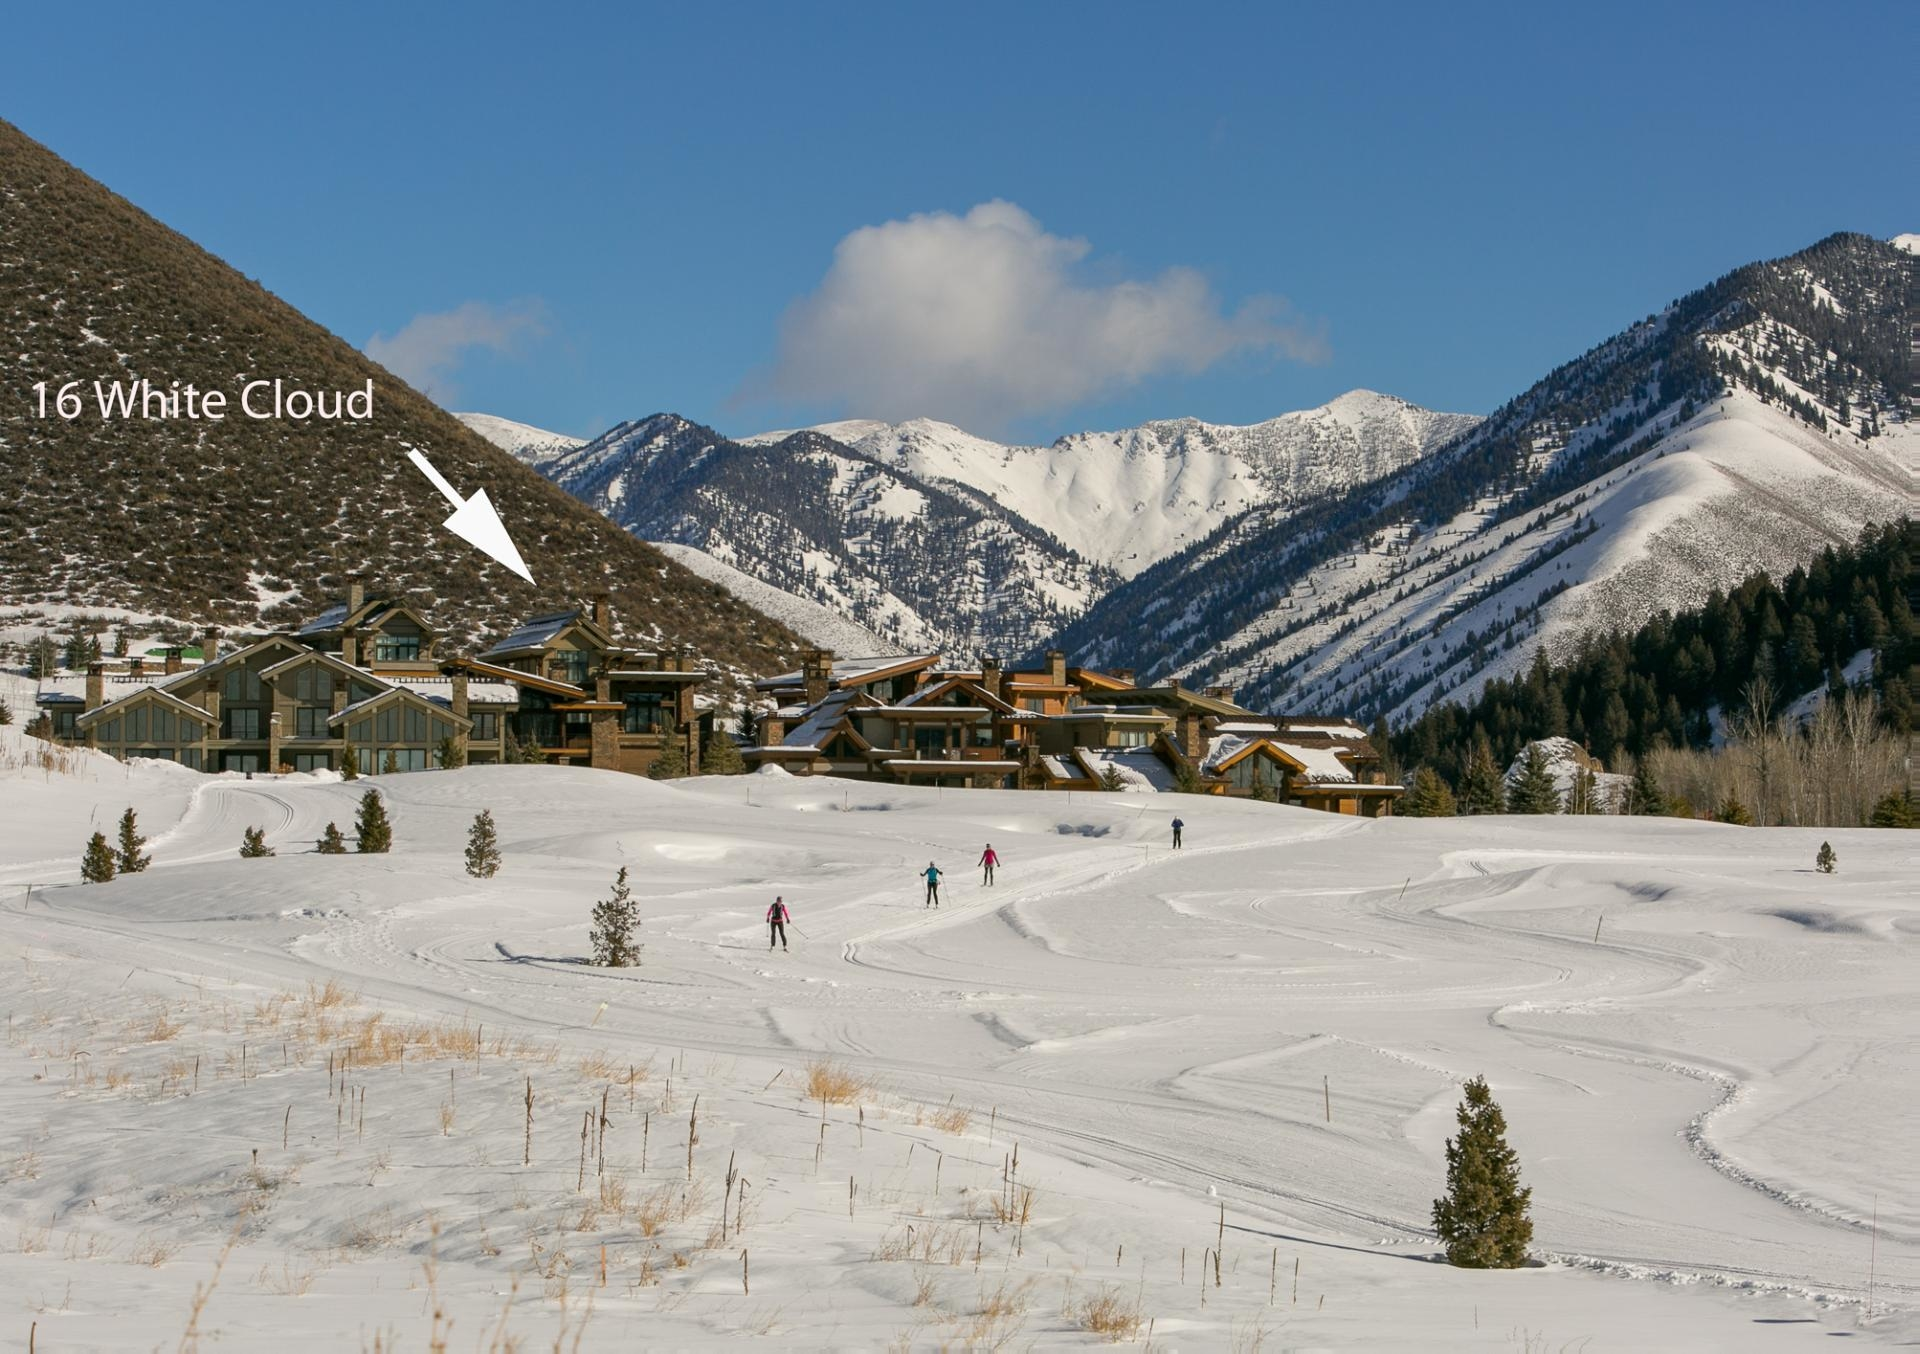 Luxury vacation rentals usa - Idaho - Sun valley - No location 4 - White Cloud 16 - Image 1/25